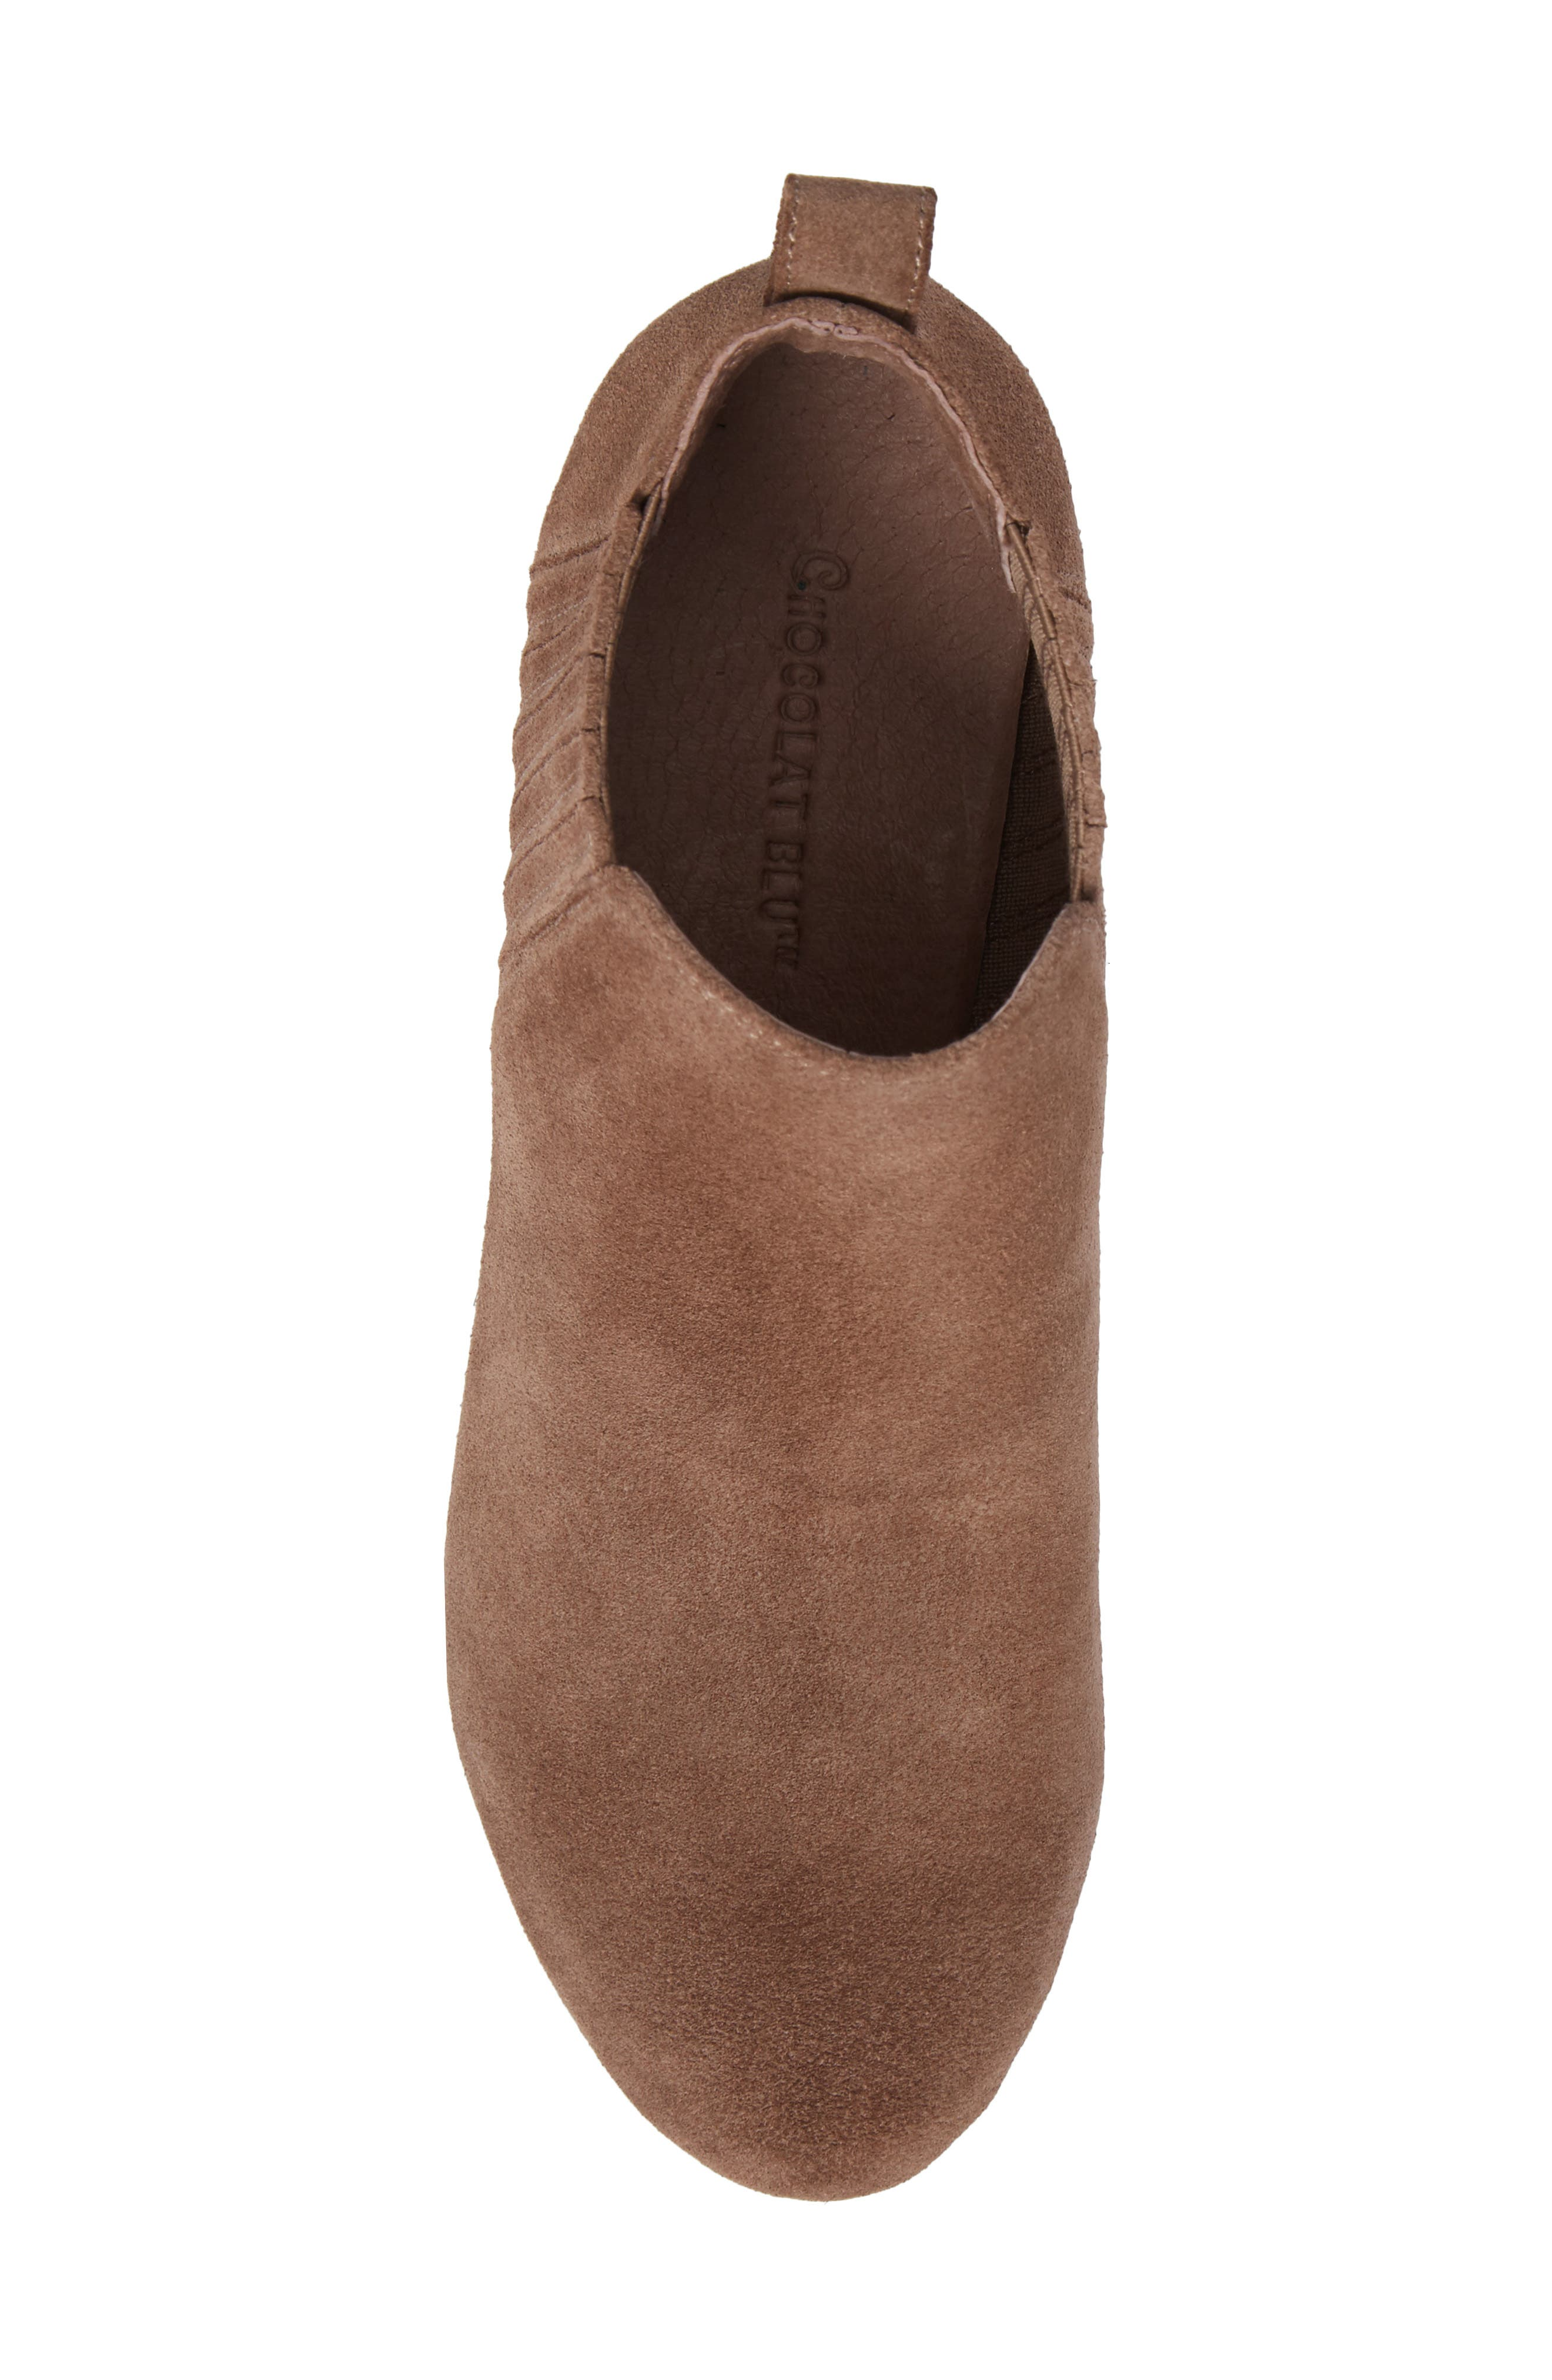 Walden Wedge Bootie,                             Alternate thumbnail 5, color,                             Taupe Suede